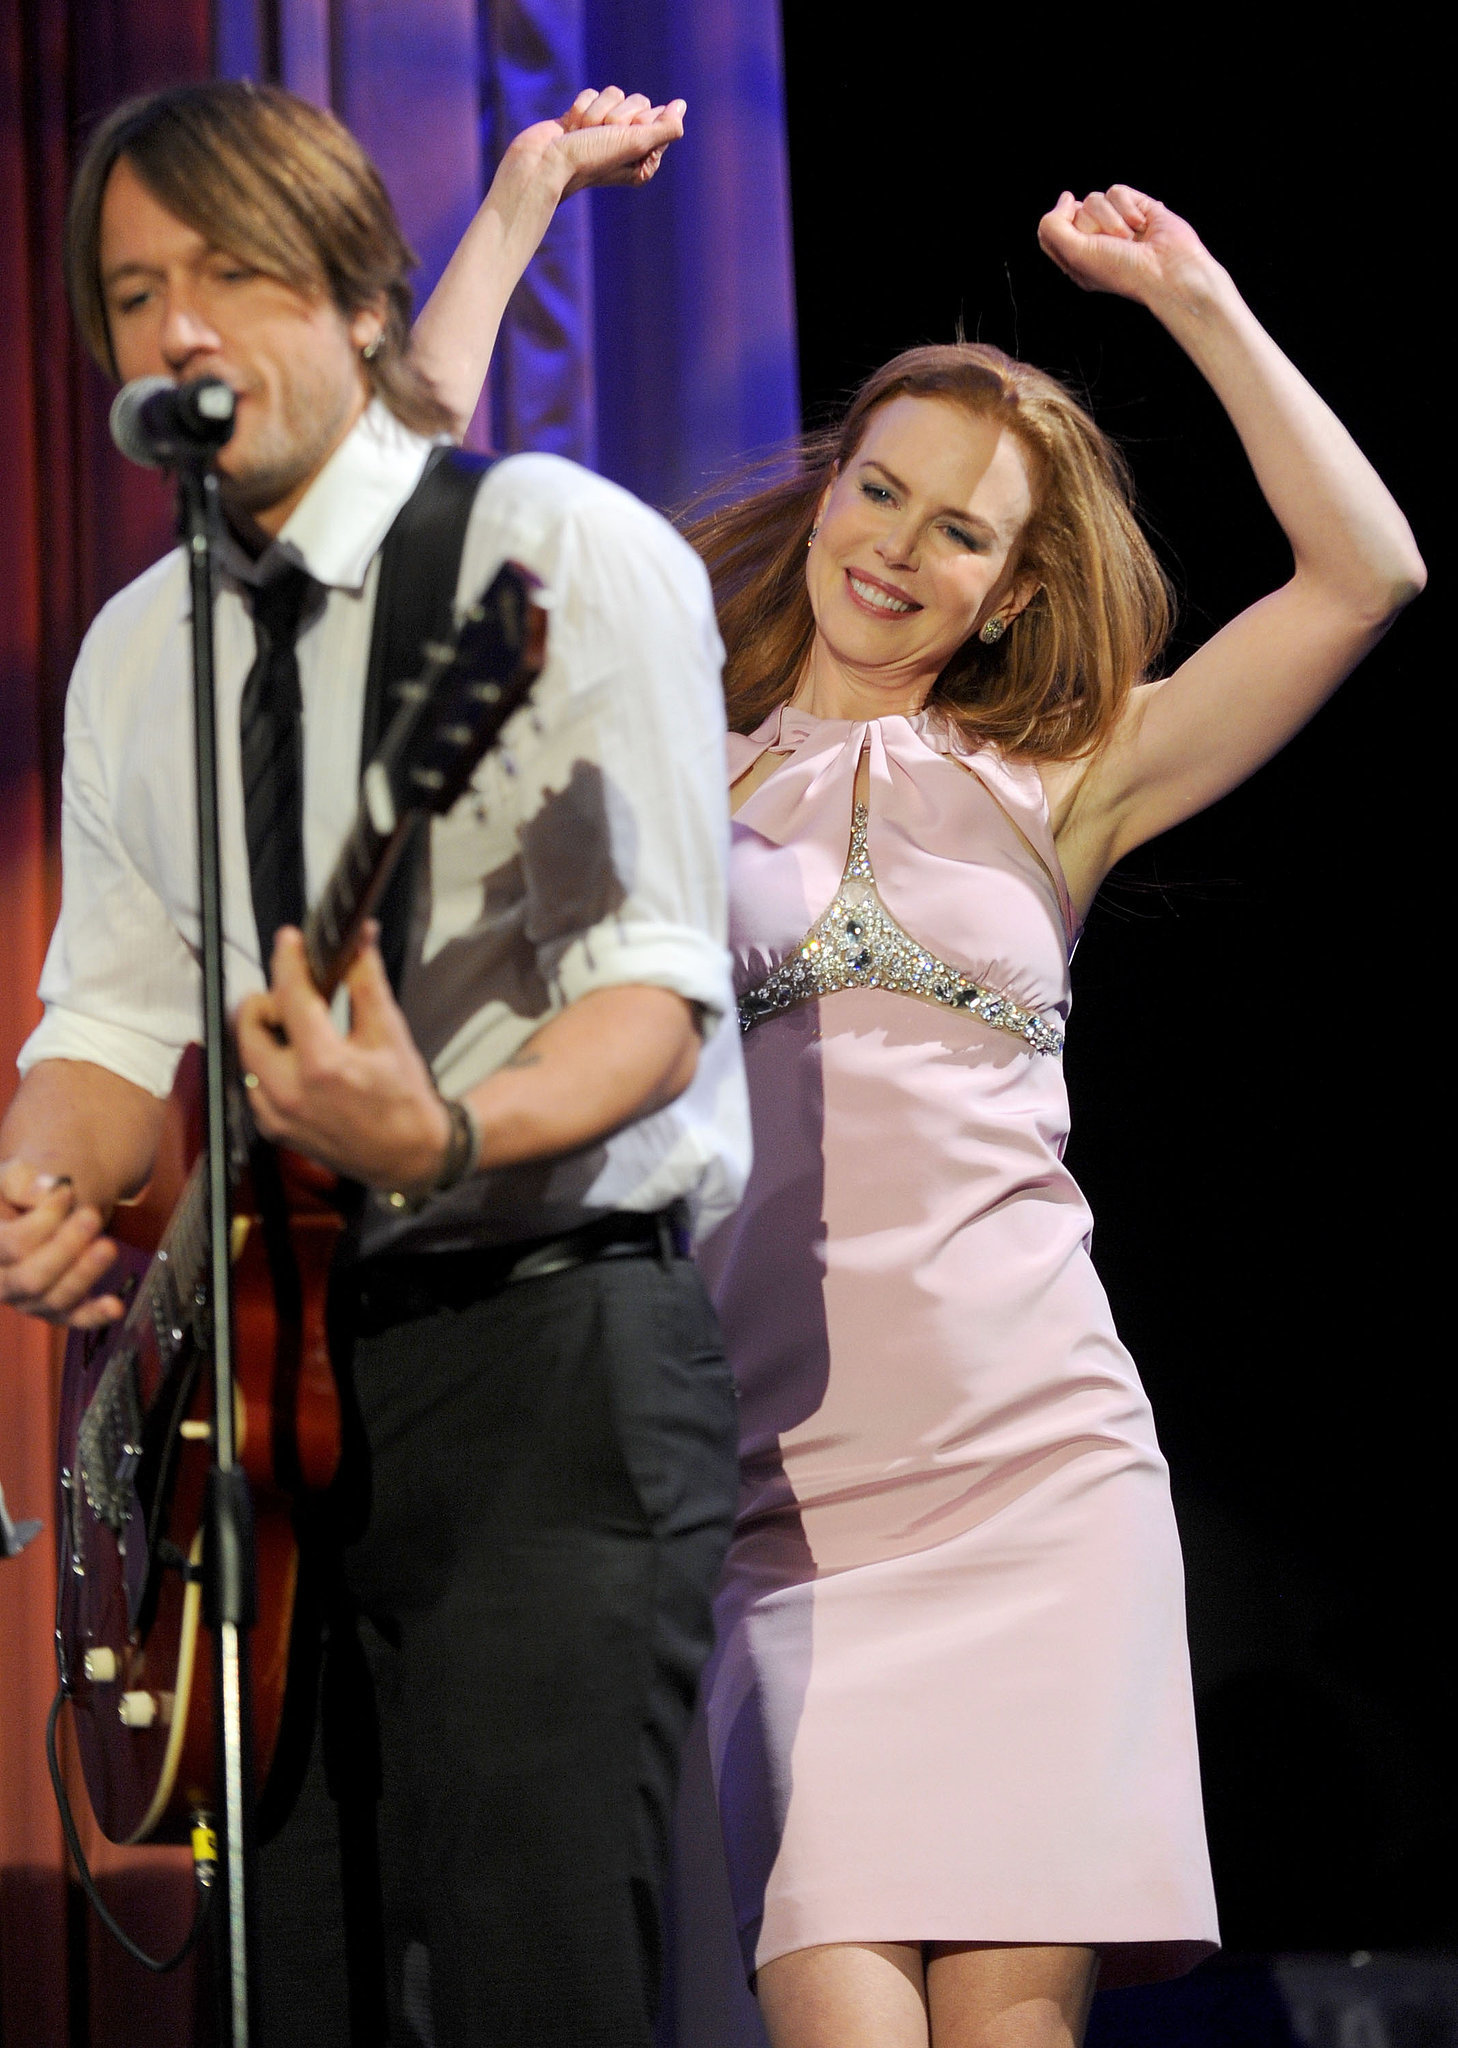 Nicole rocked out behind Keith in January 2010 at the G'Day USA gala in Hollywood.